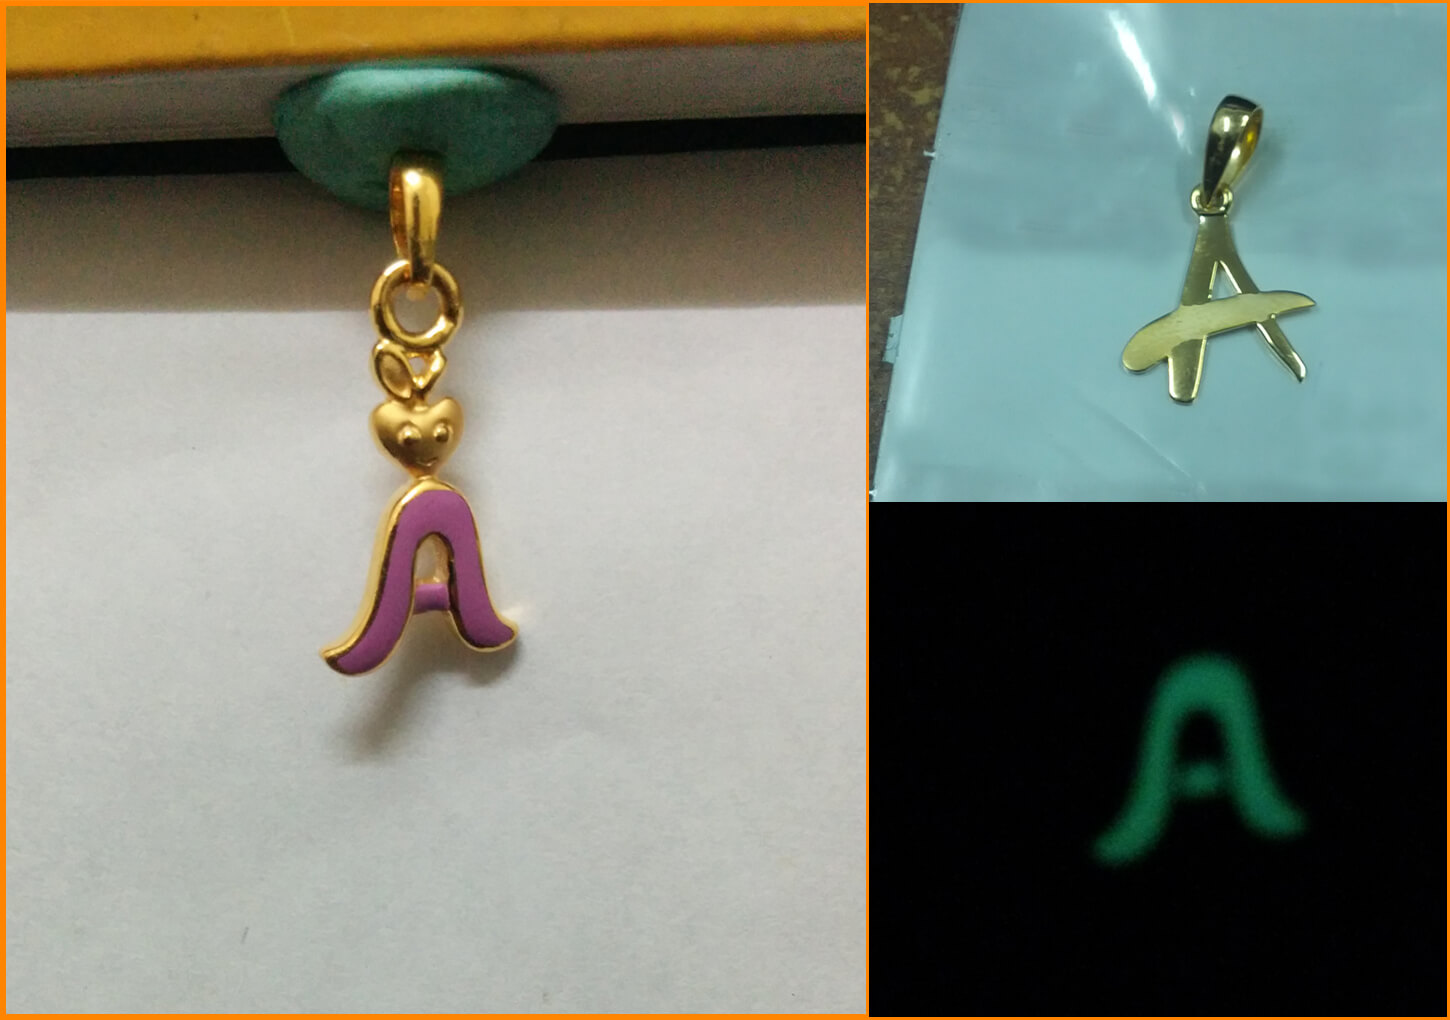 letter a gold pendnat designs by augrav.com